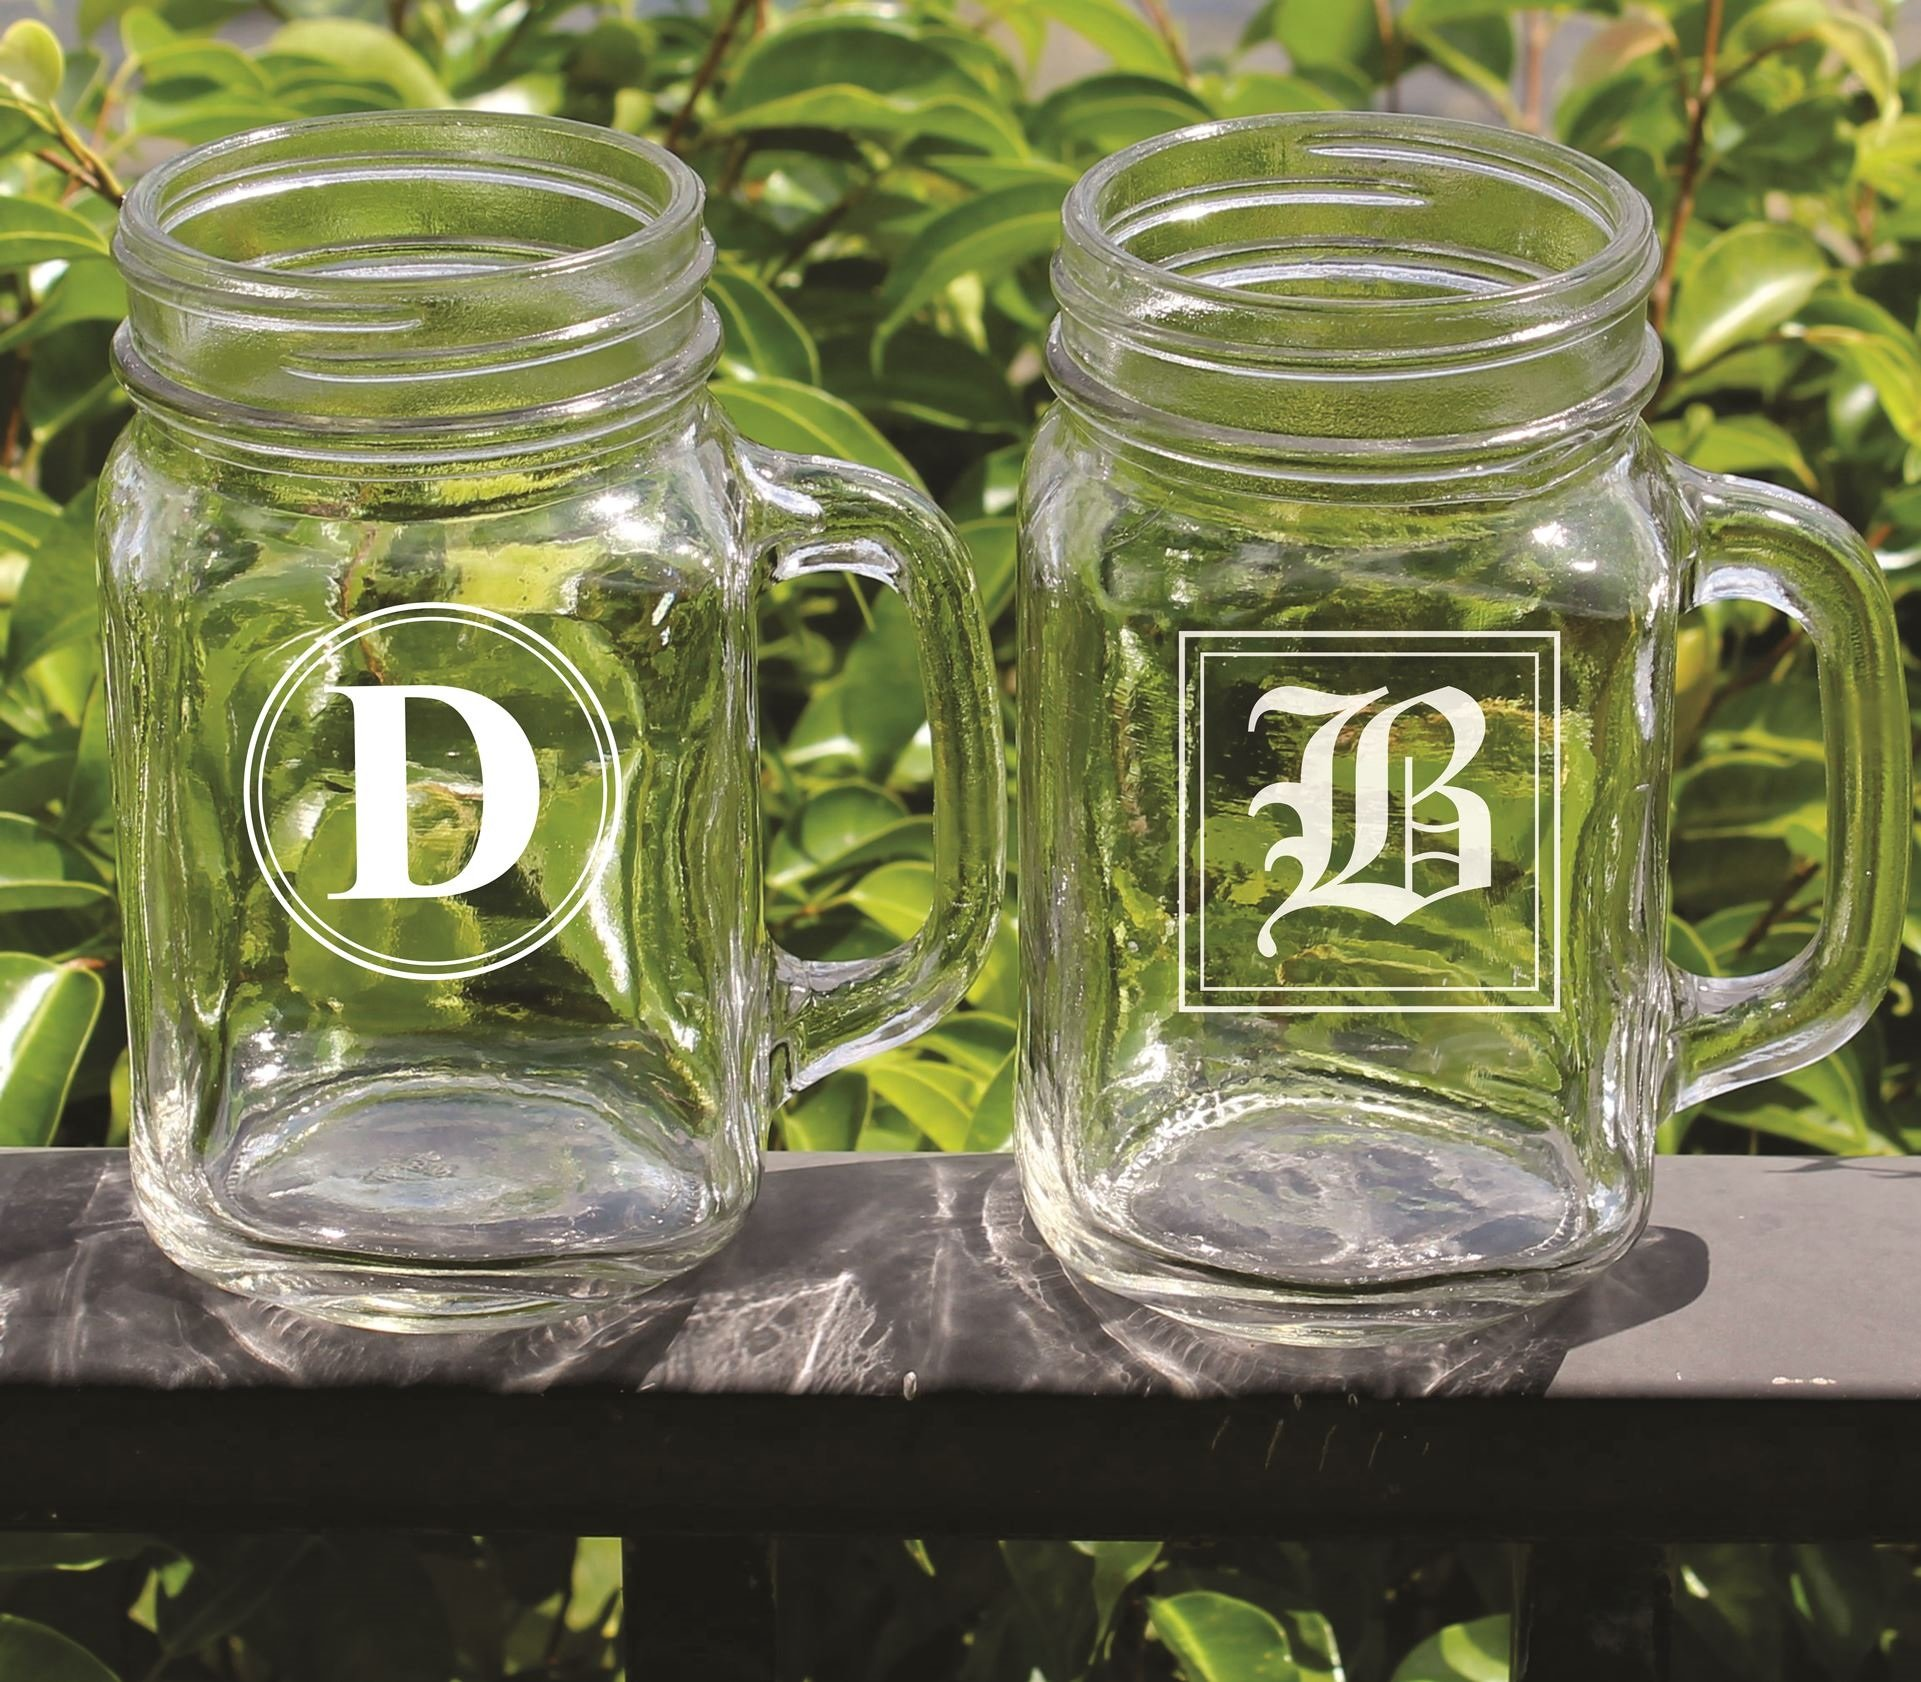 Personalized Mason Jar with Initial - Wedding Party Groomsmen Bridesmaid Housewarming Gifts - Custom Engraved Monogrammed Drinkware Glassware Barware Etched for Free